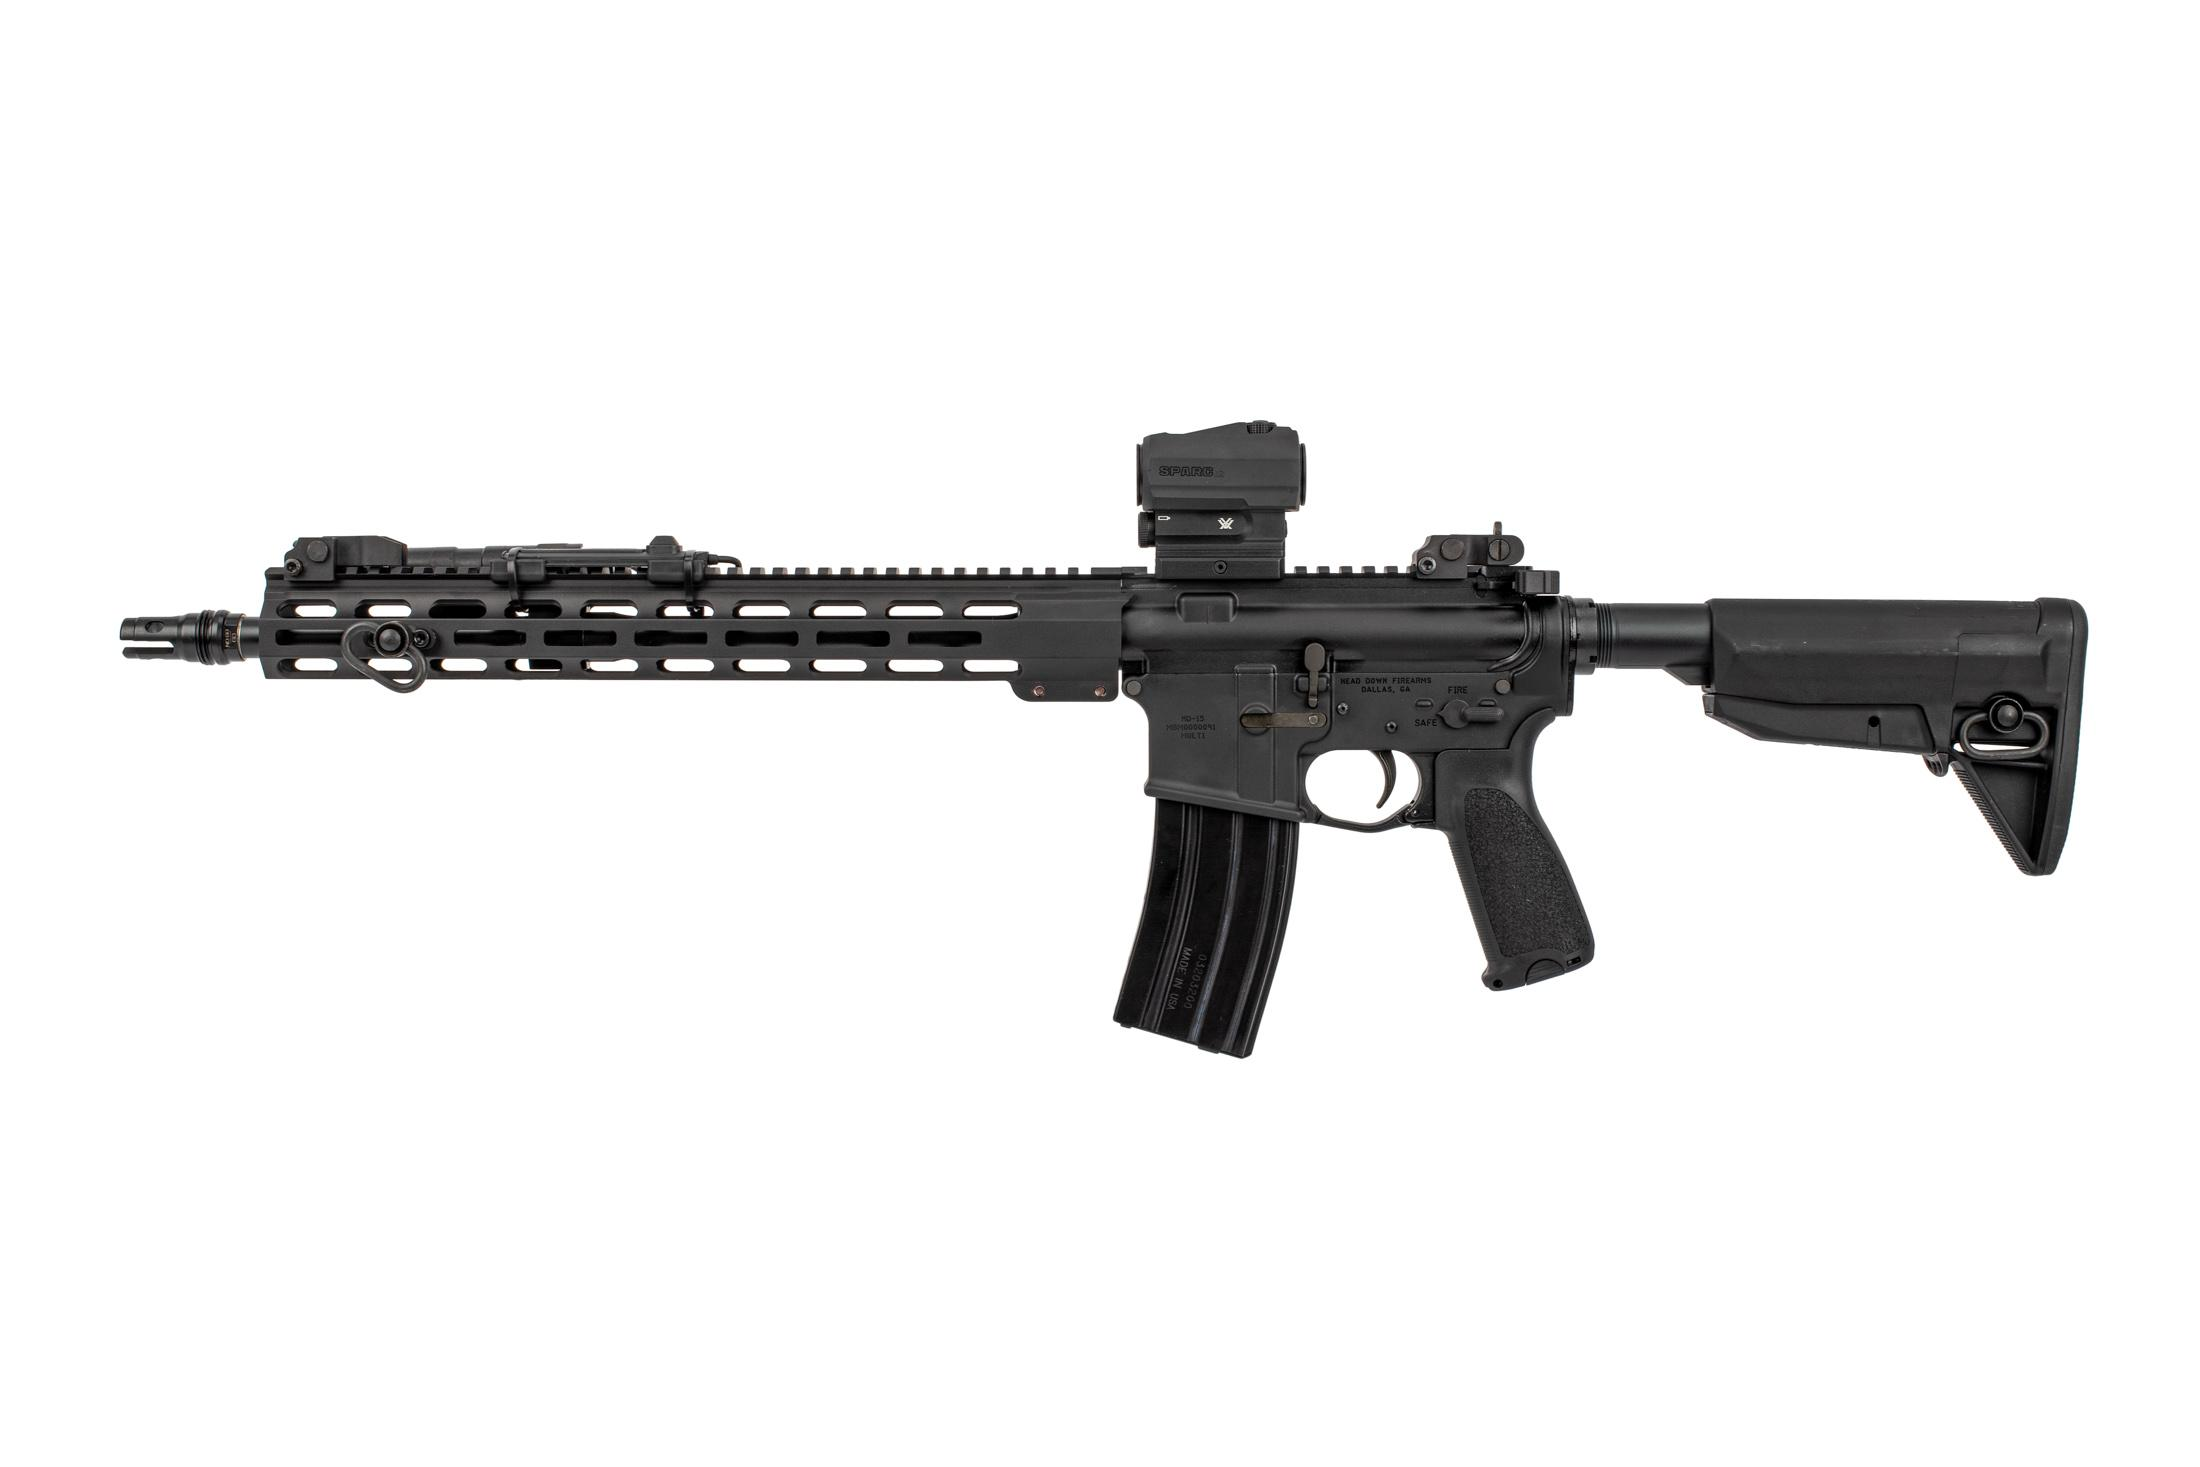 Head Down Firearms OTG Complete AR15 rifle features a QD suppressor mount flash hider